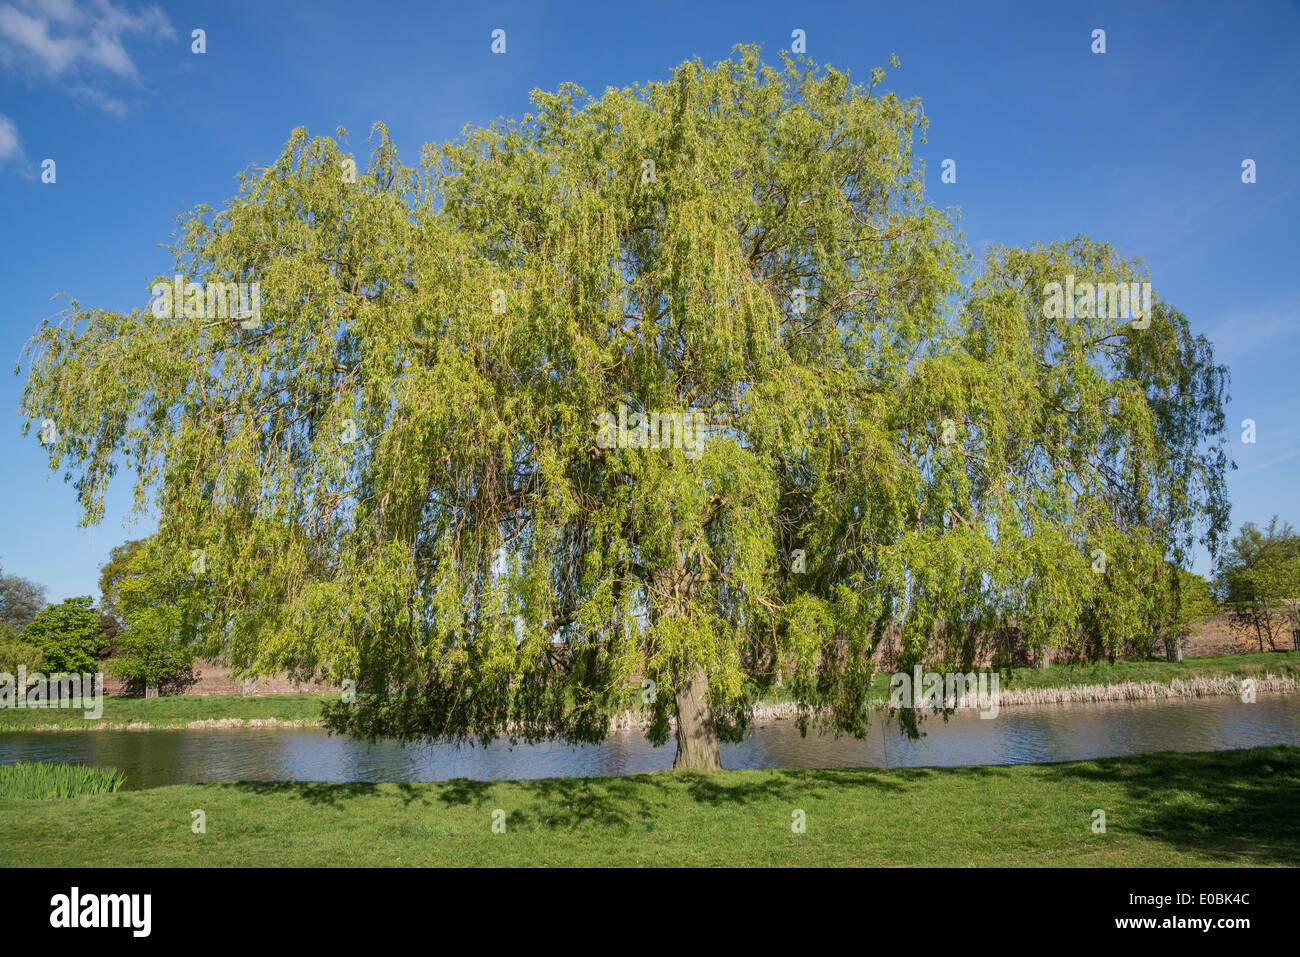 Weeping Willow Tree Stock Photos & Weeping Willow Tree Stock Images ...